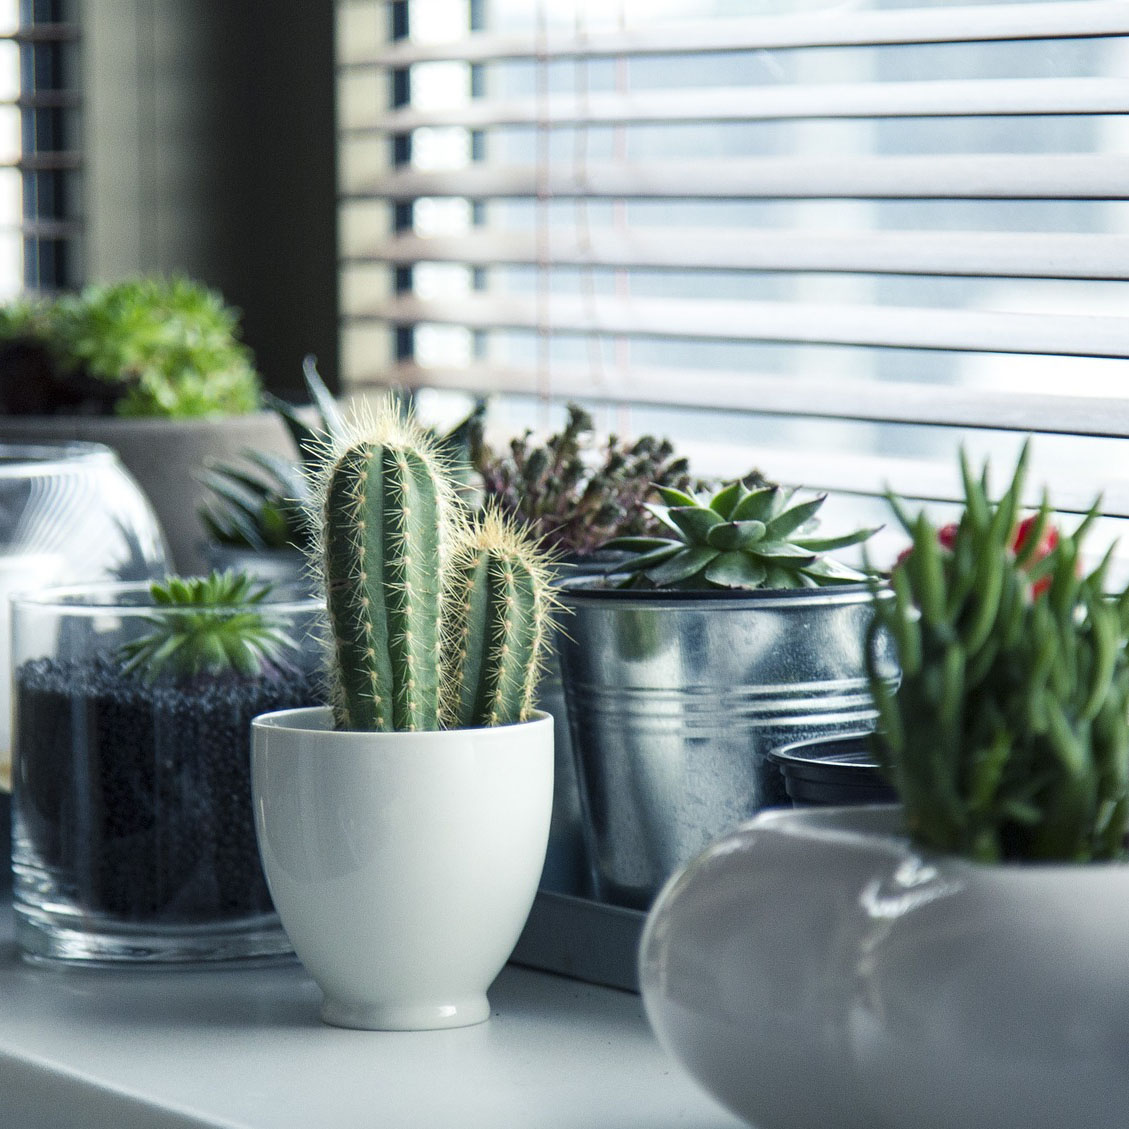 https://pixabay.com/en/pots-plants-cactus-succulent-shelf-716579/